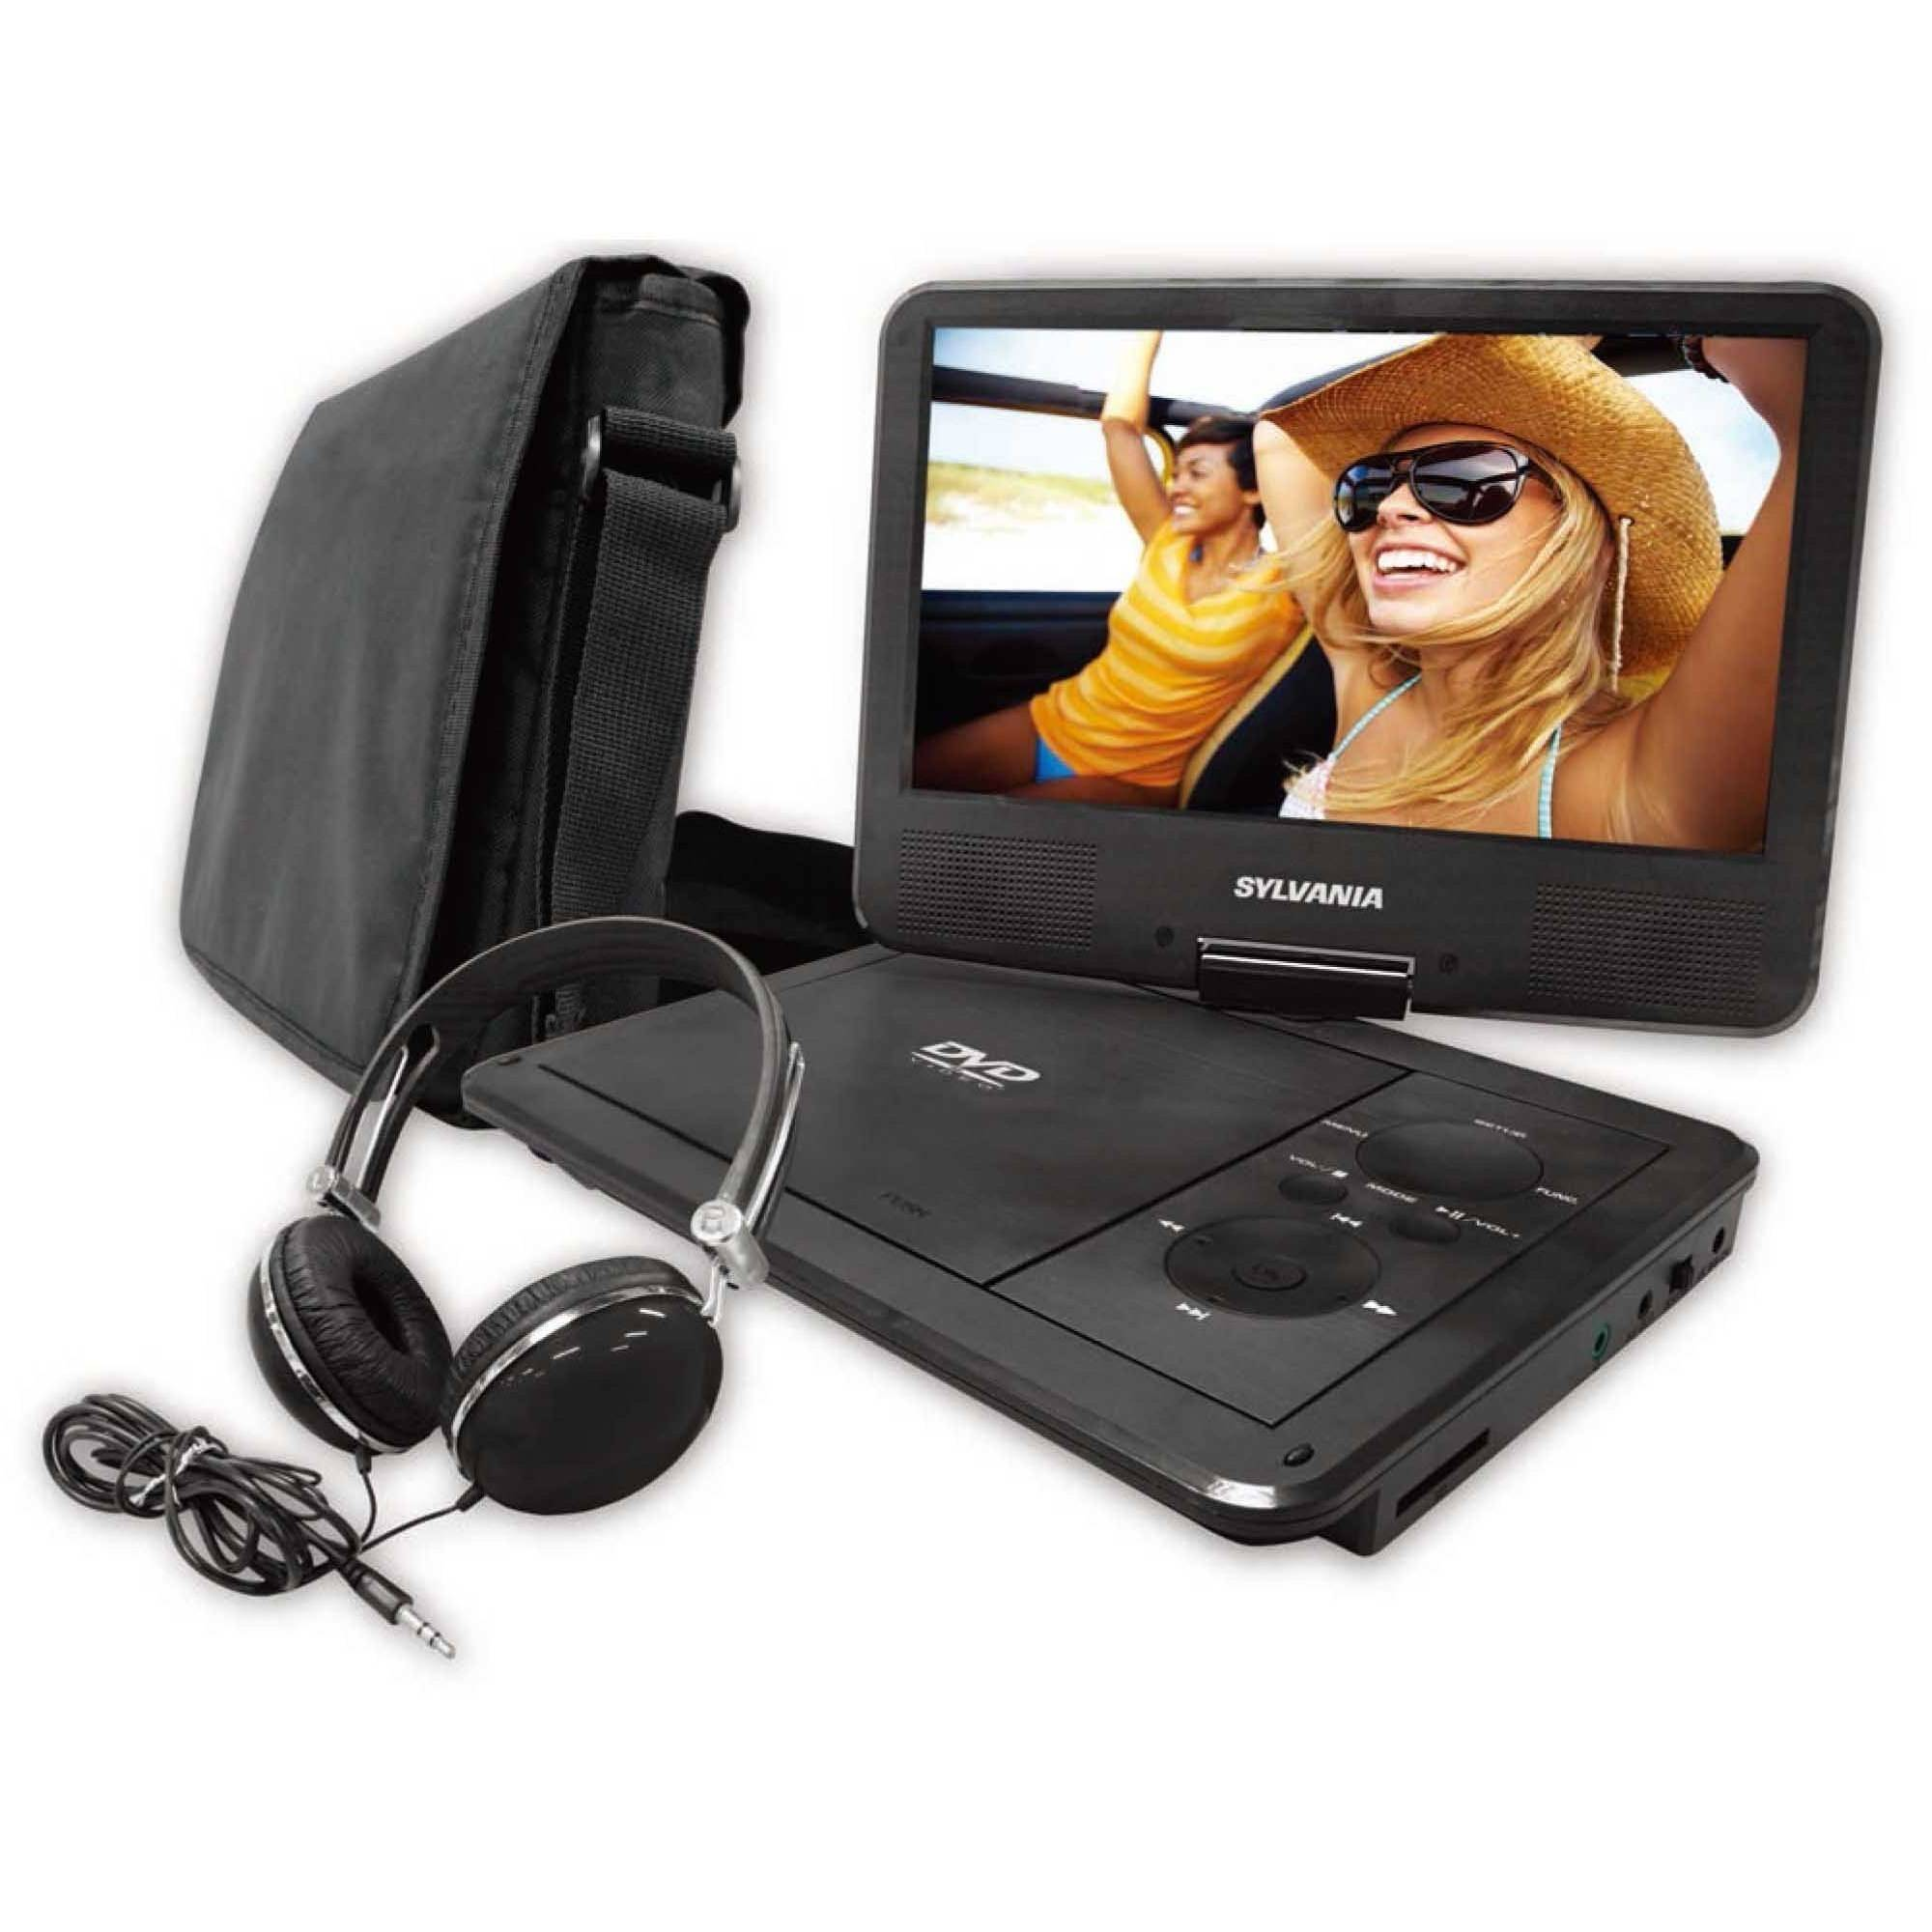 "Sylvania SDVD9060 9"" Swivel Screen Portable DVD Player with Deluxe Carry Bag and Matching Headphones (Multiple Colors)"